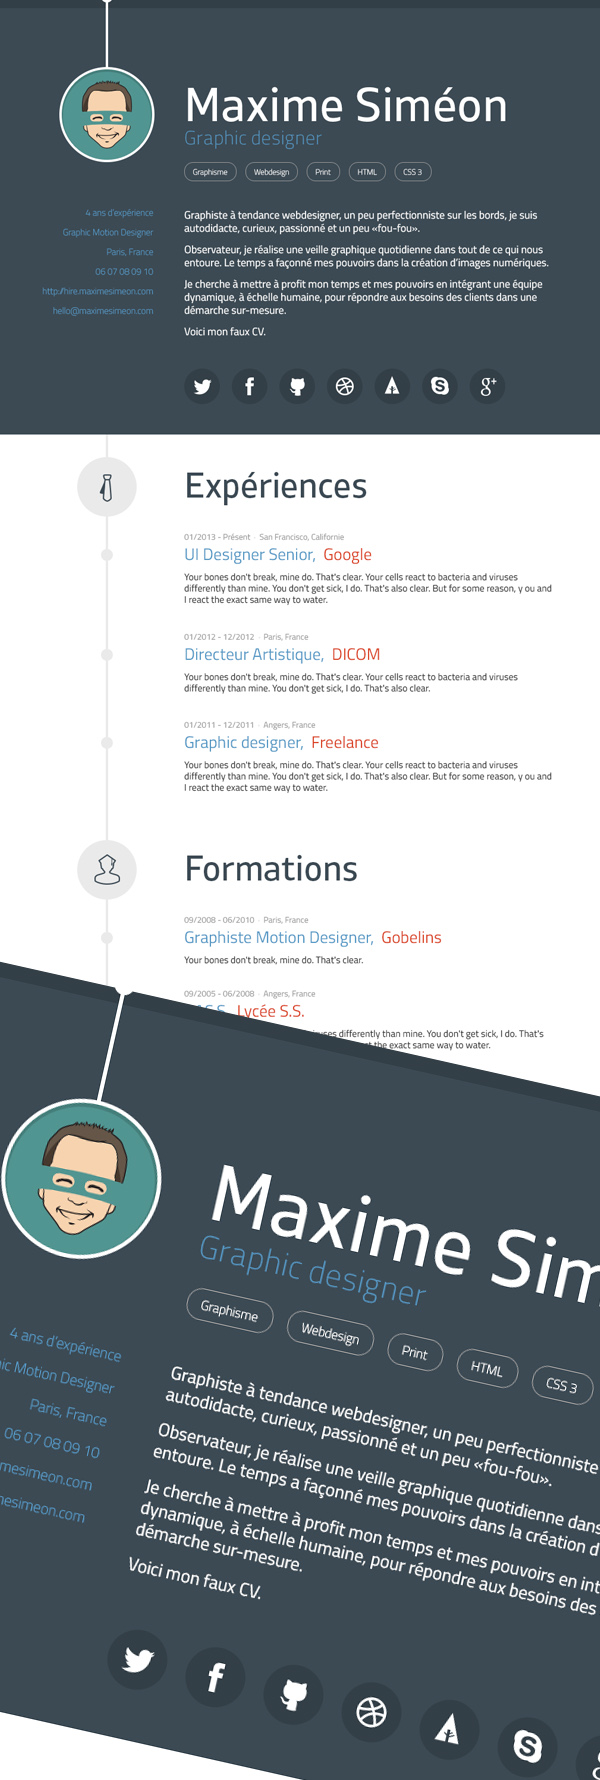 free cv resume templates and mockups - Resume Templates For Graphic Designers